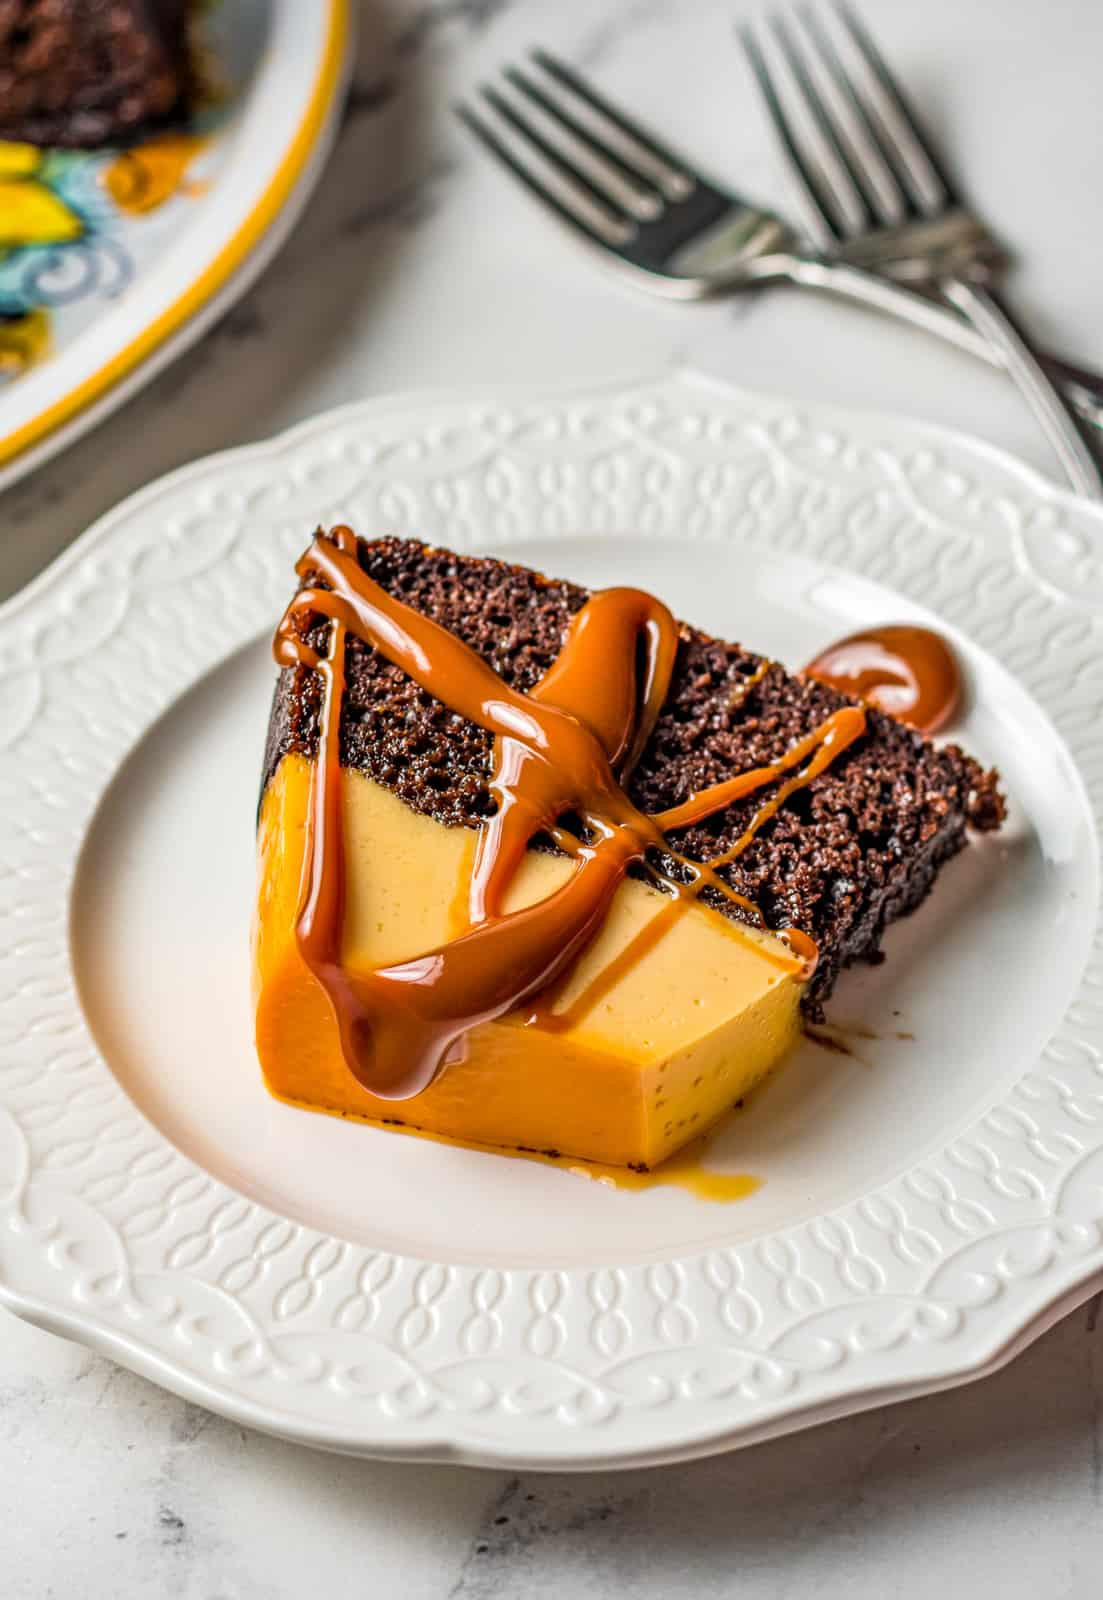 Chocoflan slice on white plate drizzled with dulce de leech